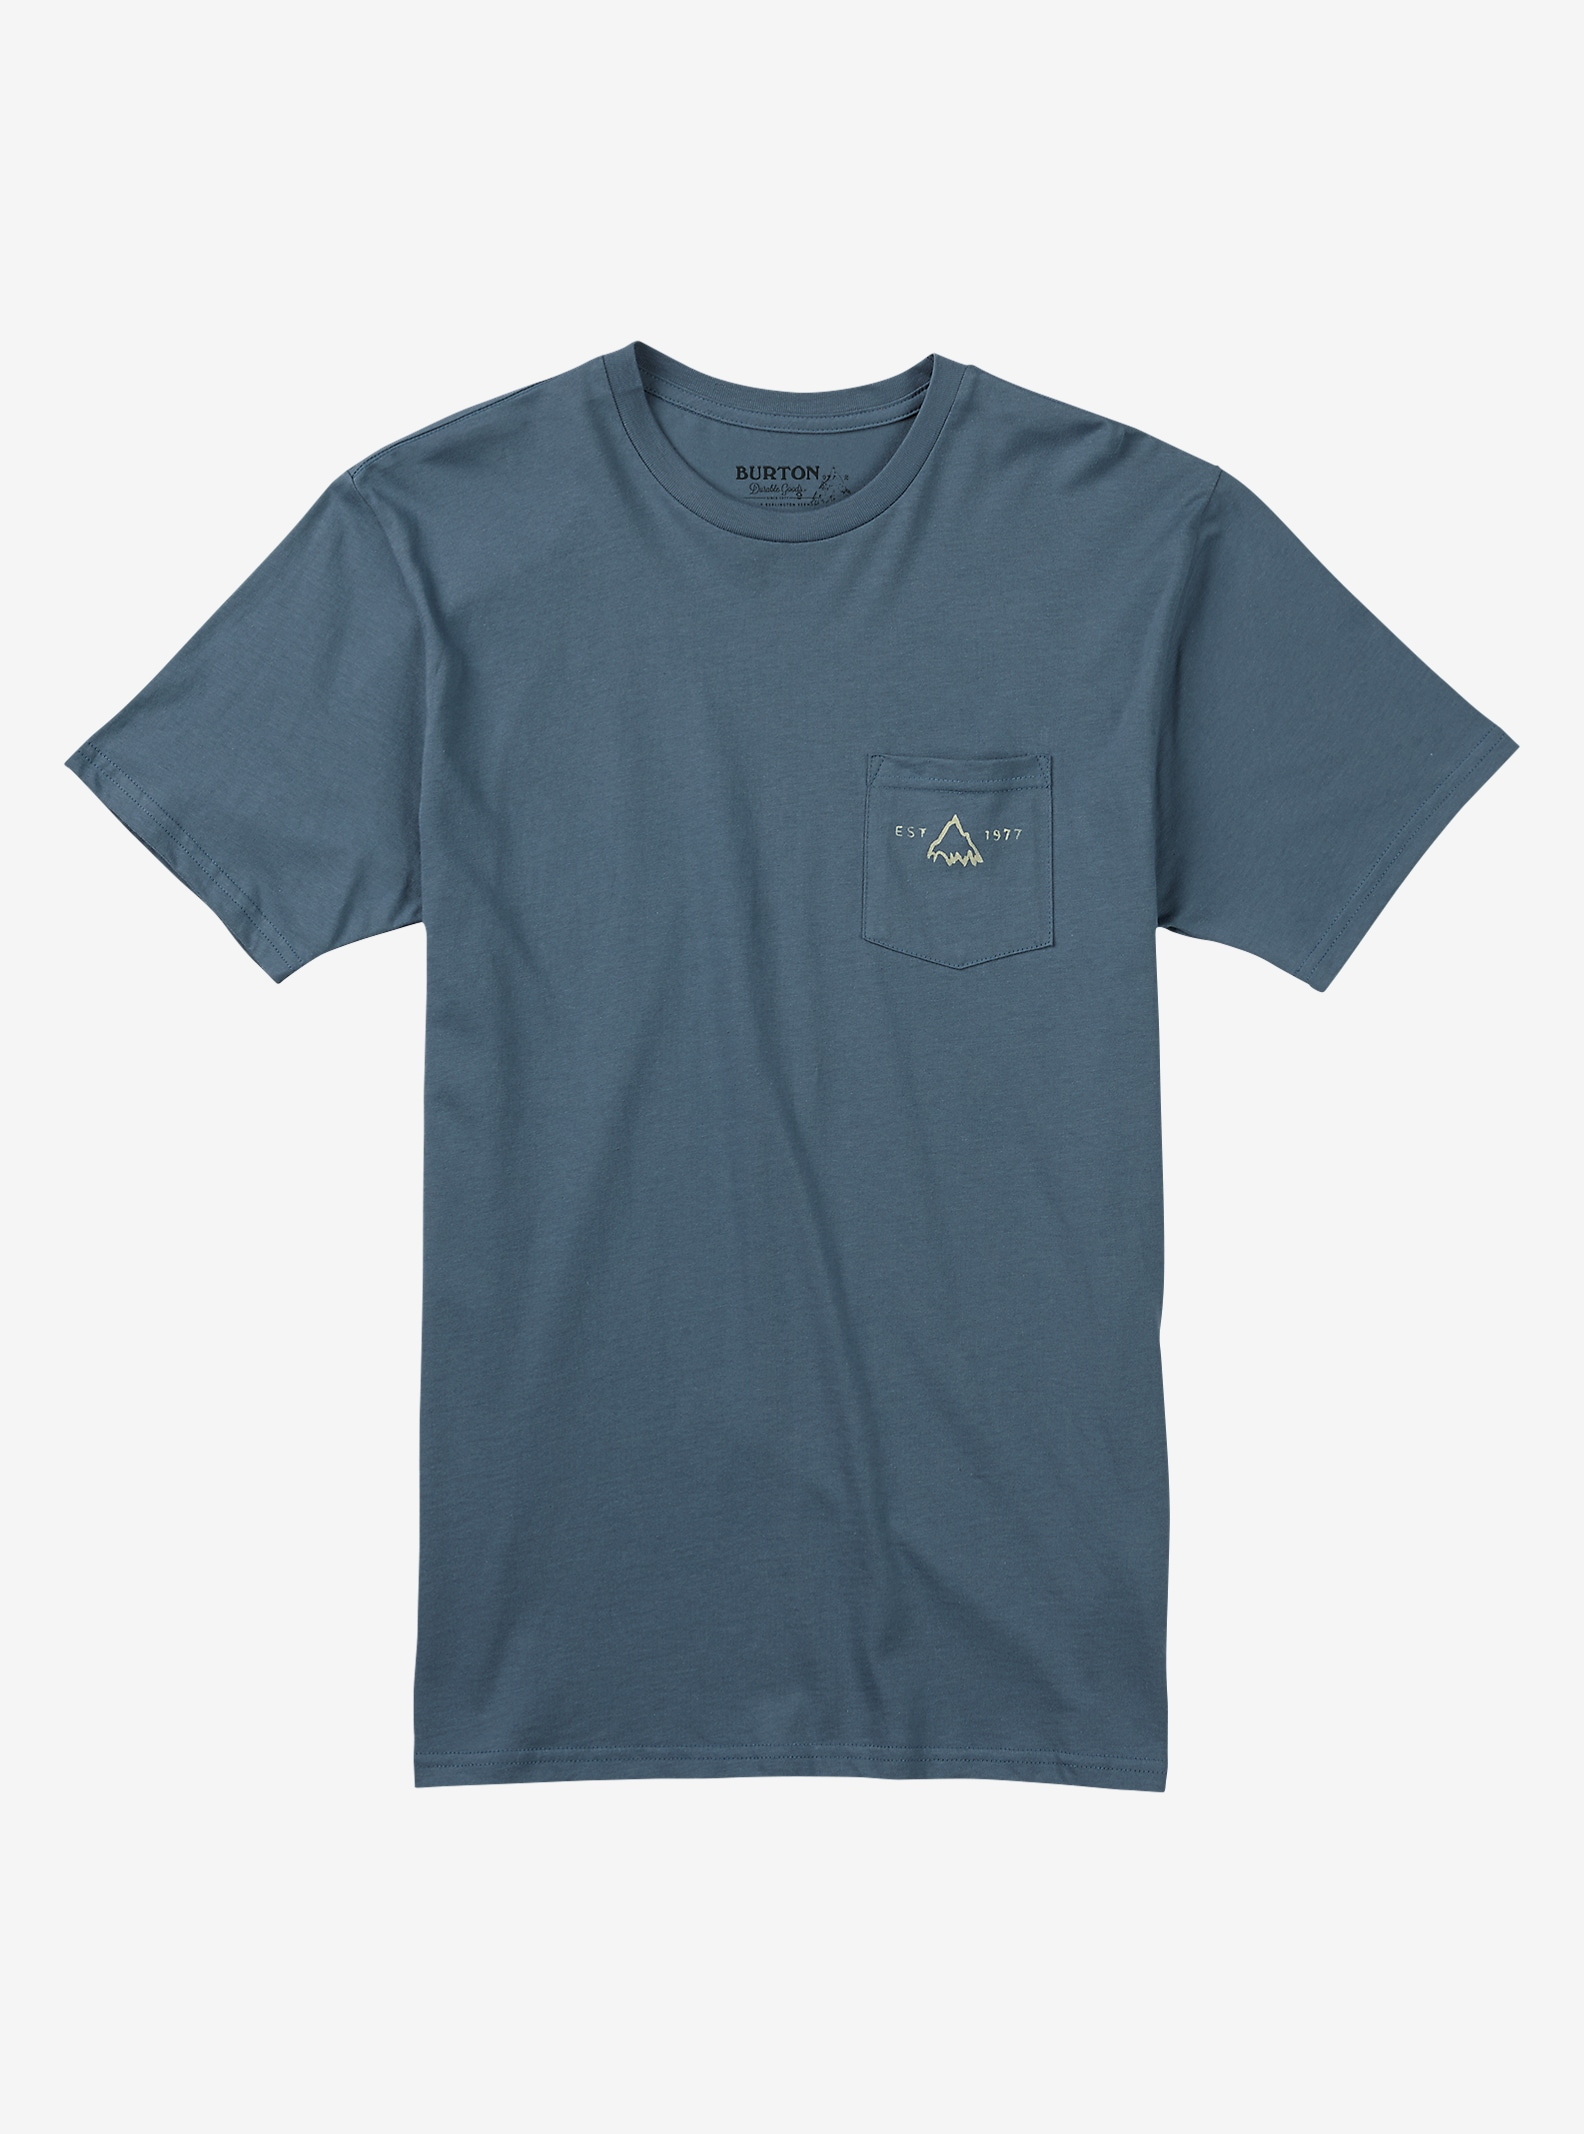 Burton Crafted SS Pocket Tee shown in Blue Mirage